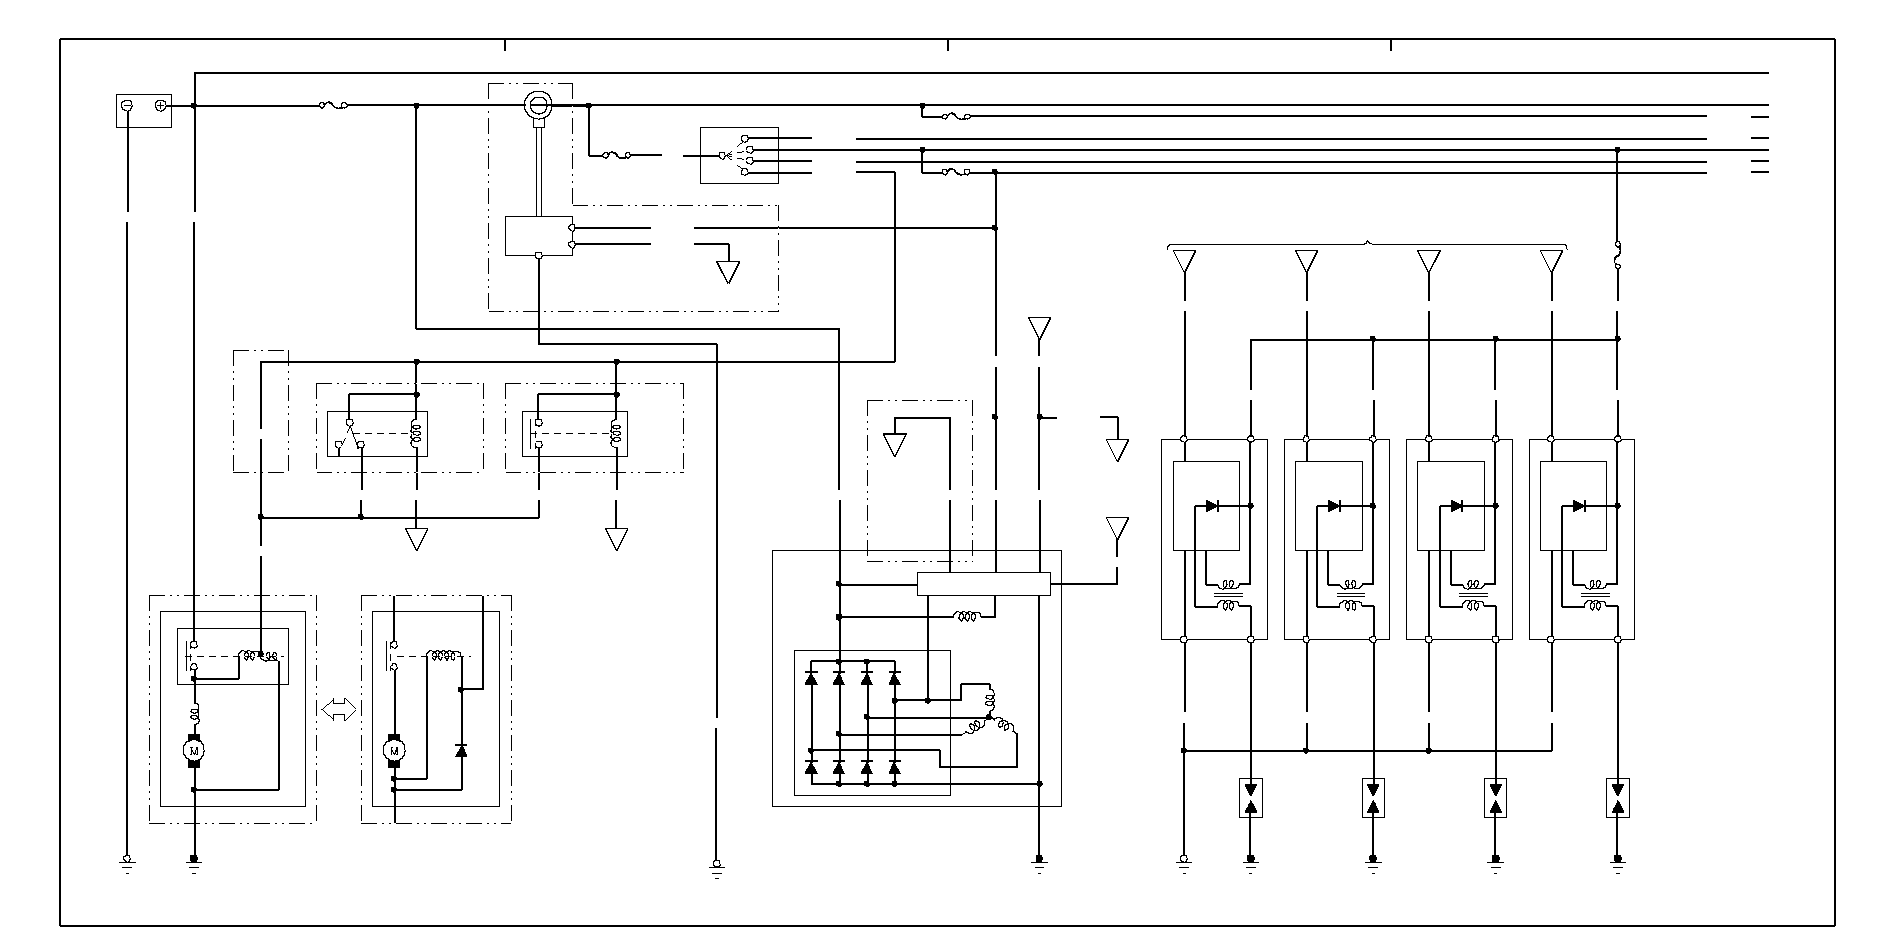 hight resolution of honda cr v radio wiring diagram honda wiring